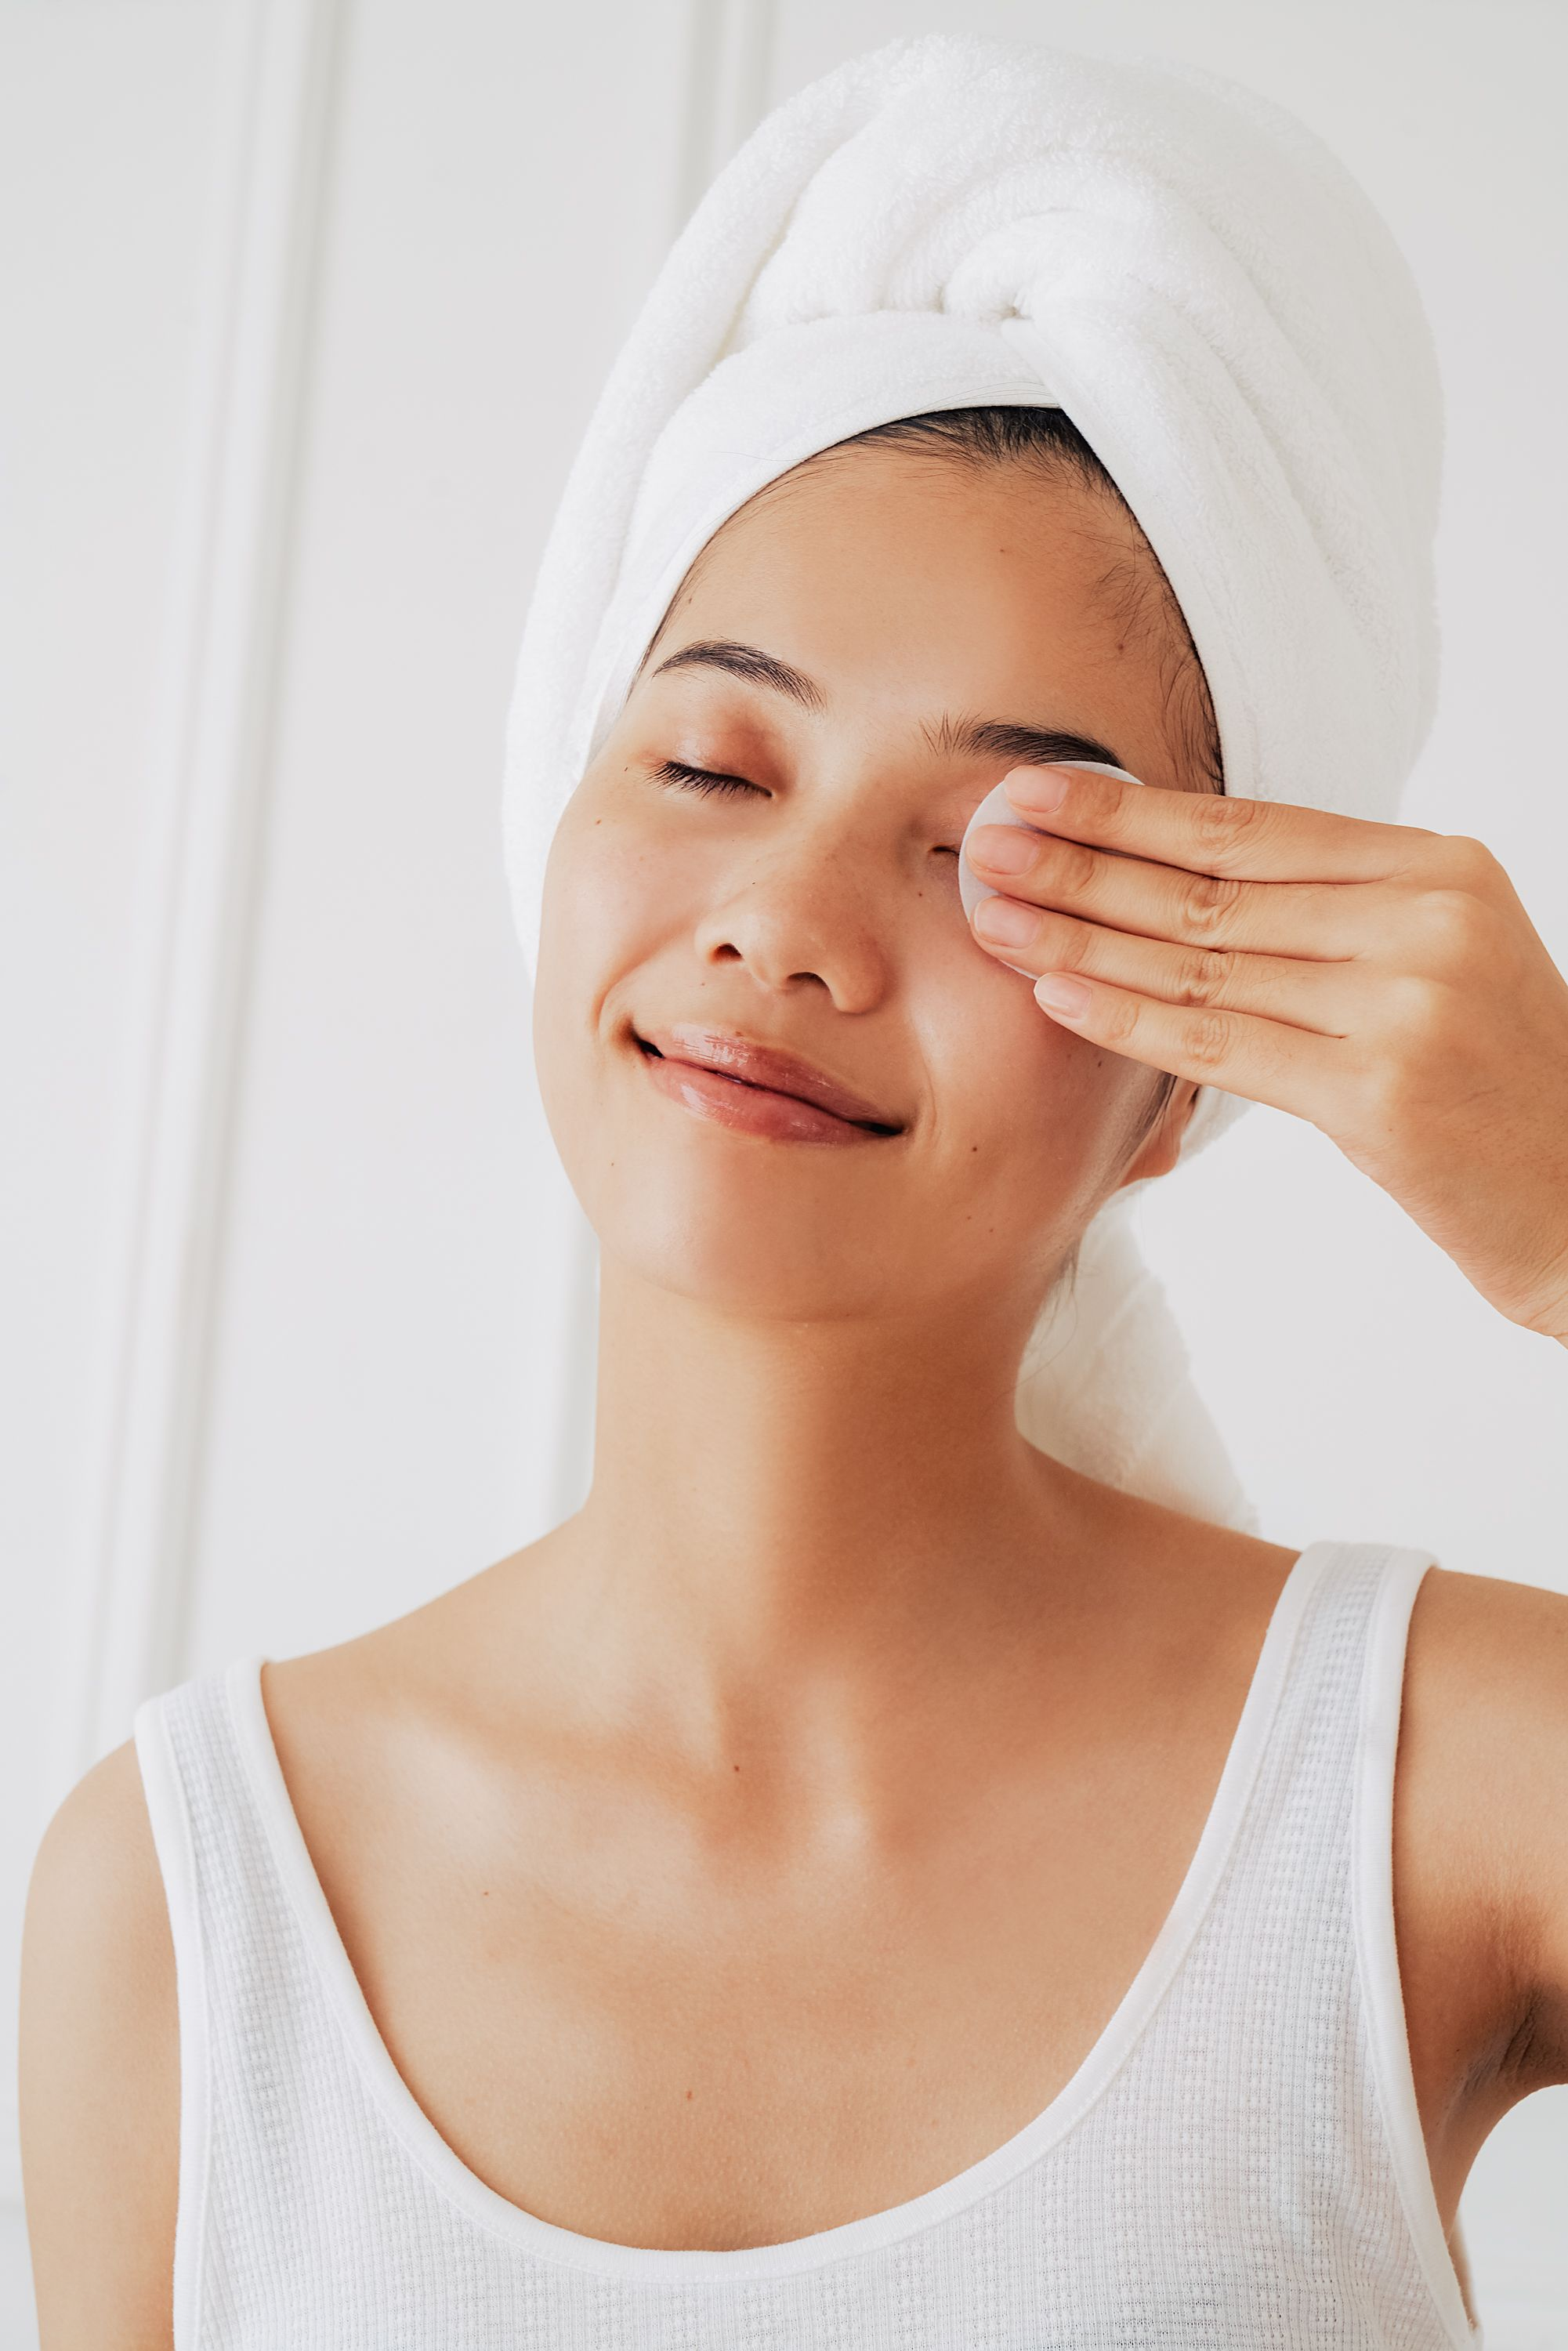 Removes all traces of makeup that soap and water can leave